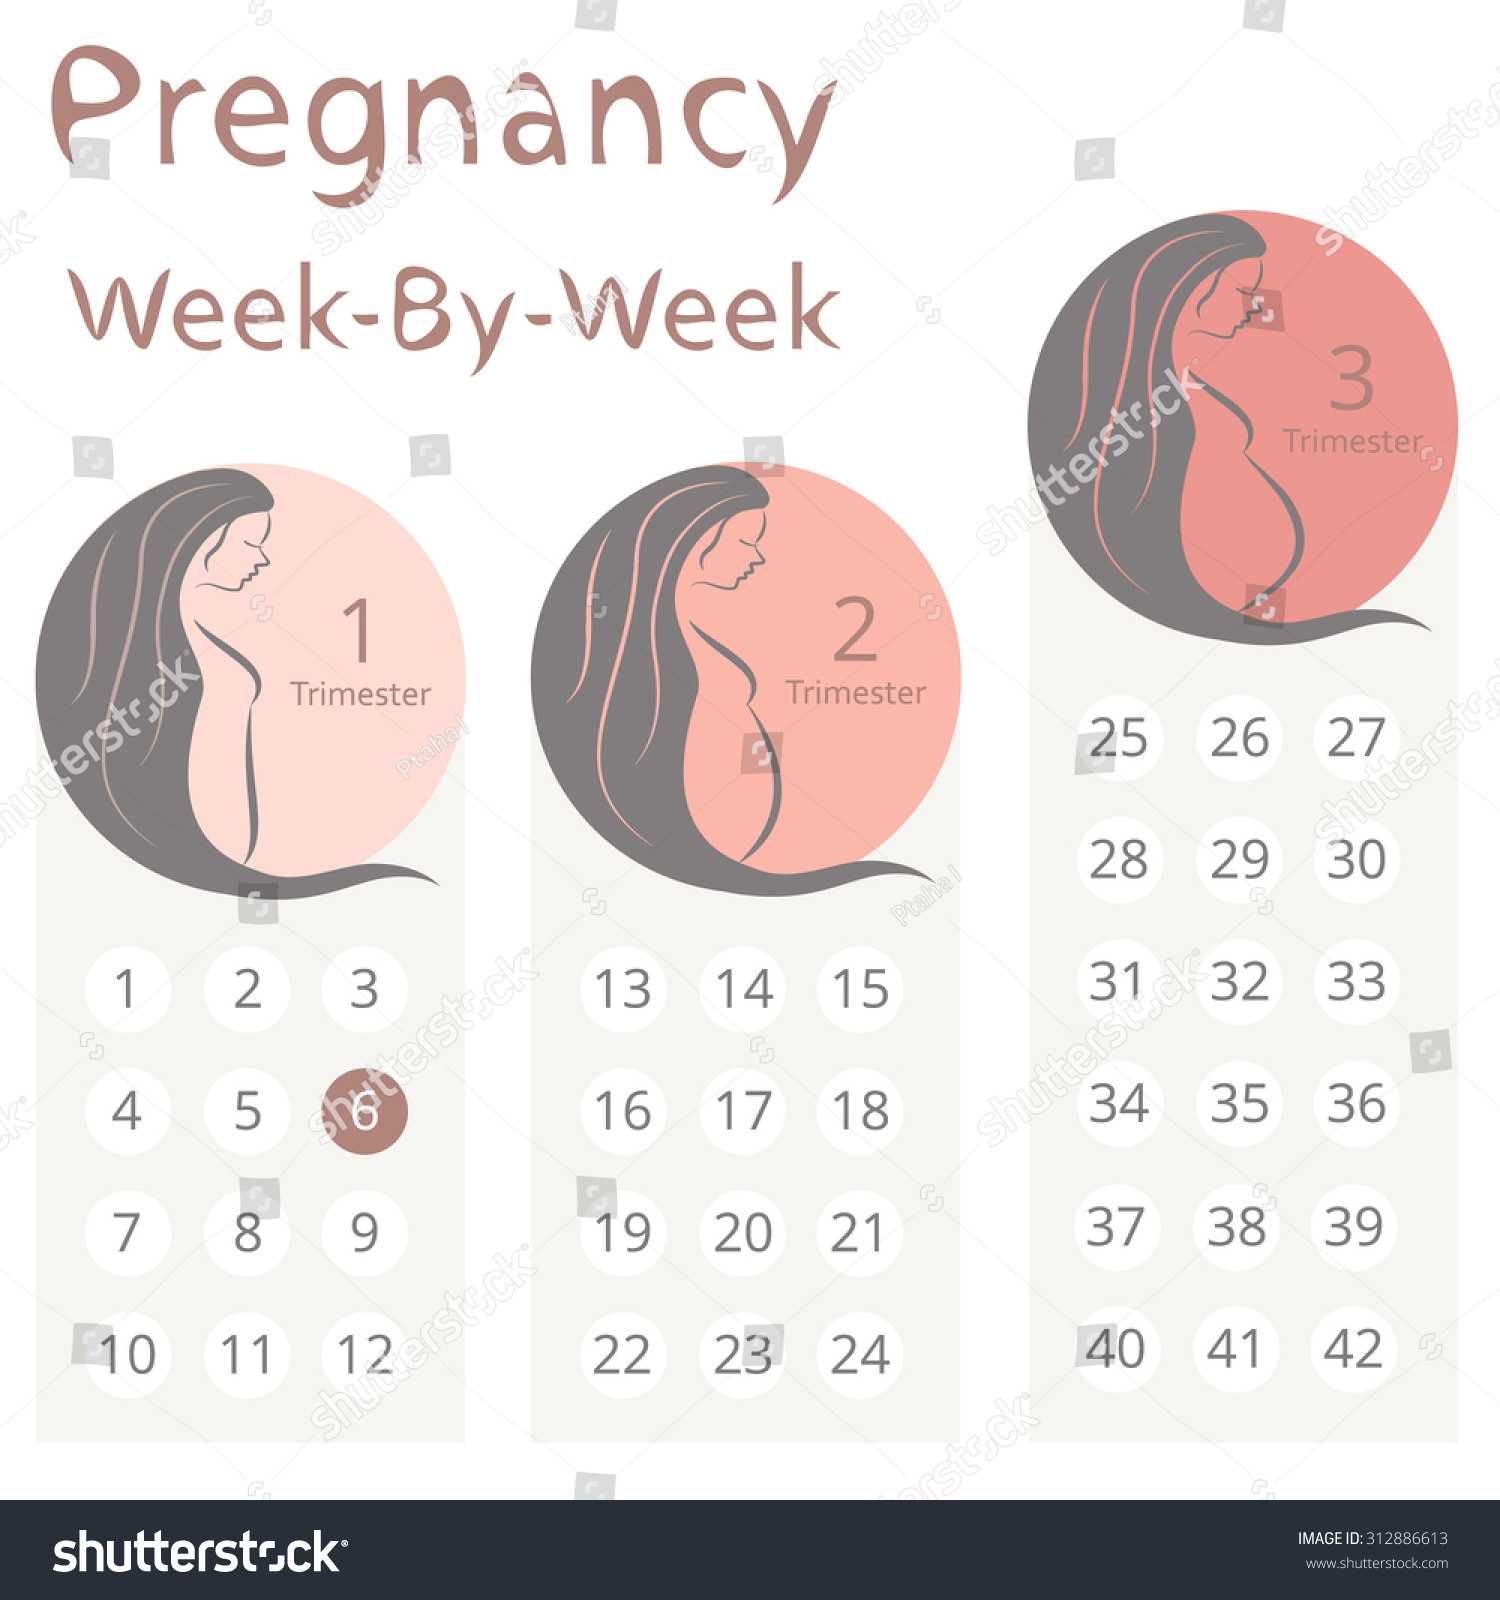 Pregnancy Weeks Calendar - Teke.wpart.co